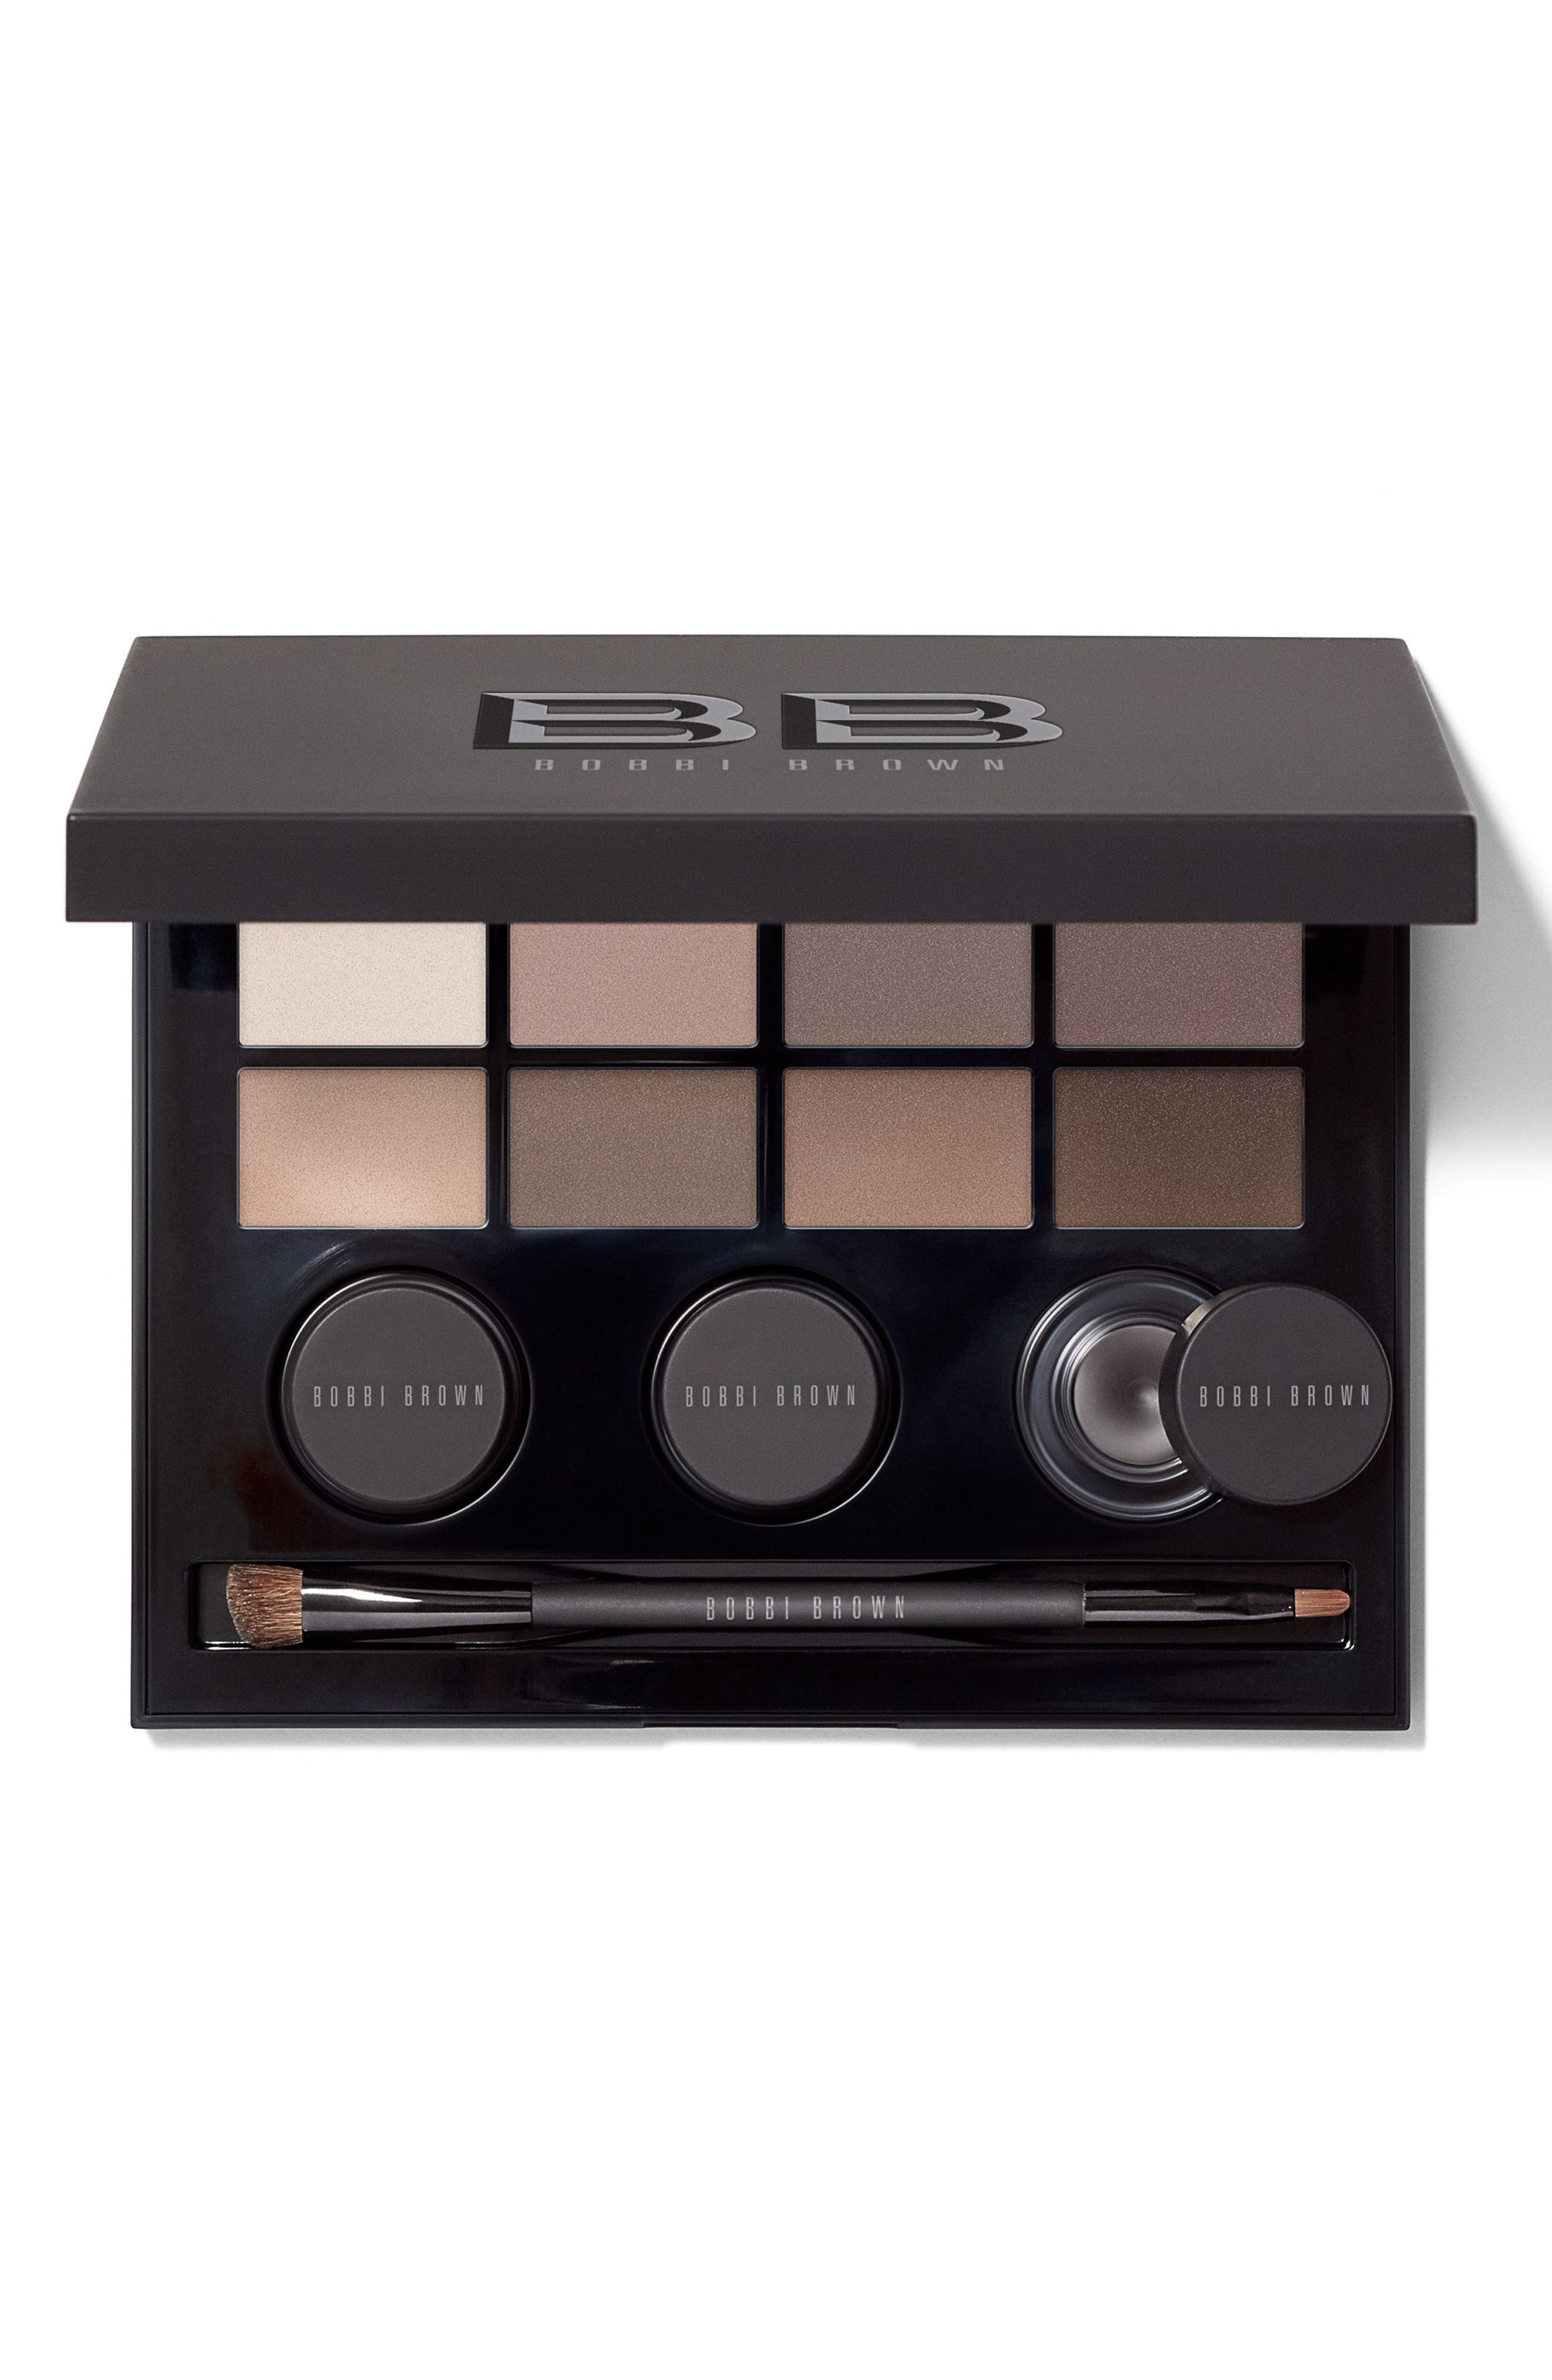 Bobbi Brown The Mattes Edition Eyeshadow & Gel Liner Palette (Nordstrom Exclusive) ($189 Value)